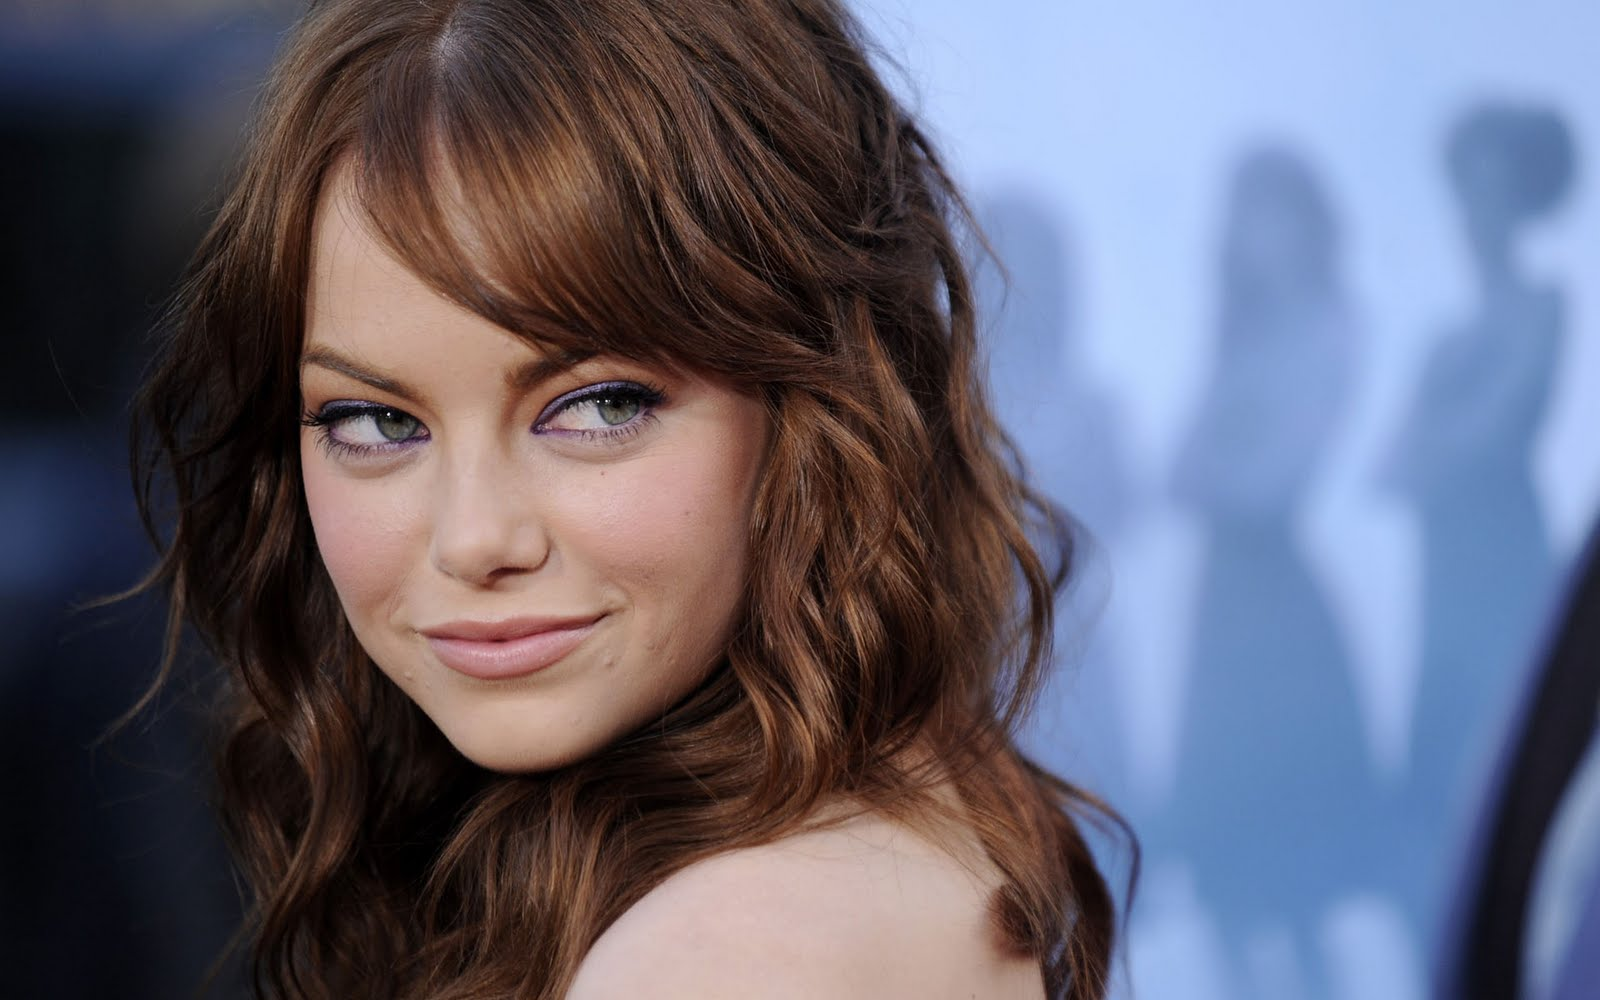 http://4.bp.blogspot.com/-T3raTeDw0_A/TeXrIkkWfiI/AAAAAAAABIo/c1KY1sch3pM/s1600/Emma-Stone-Wallpaper-download.jpg